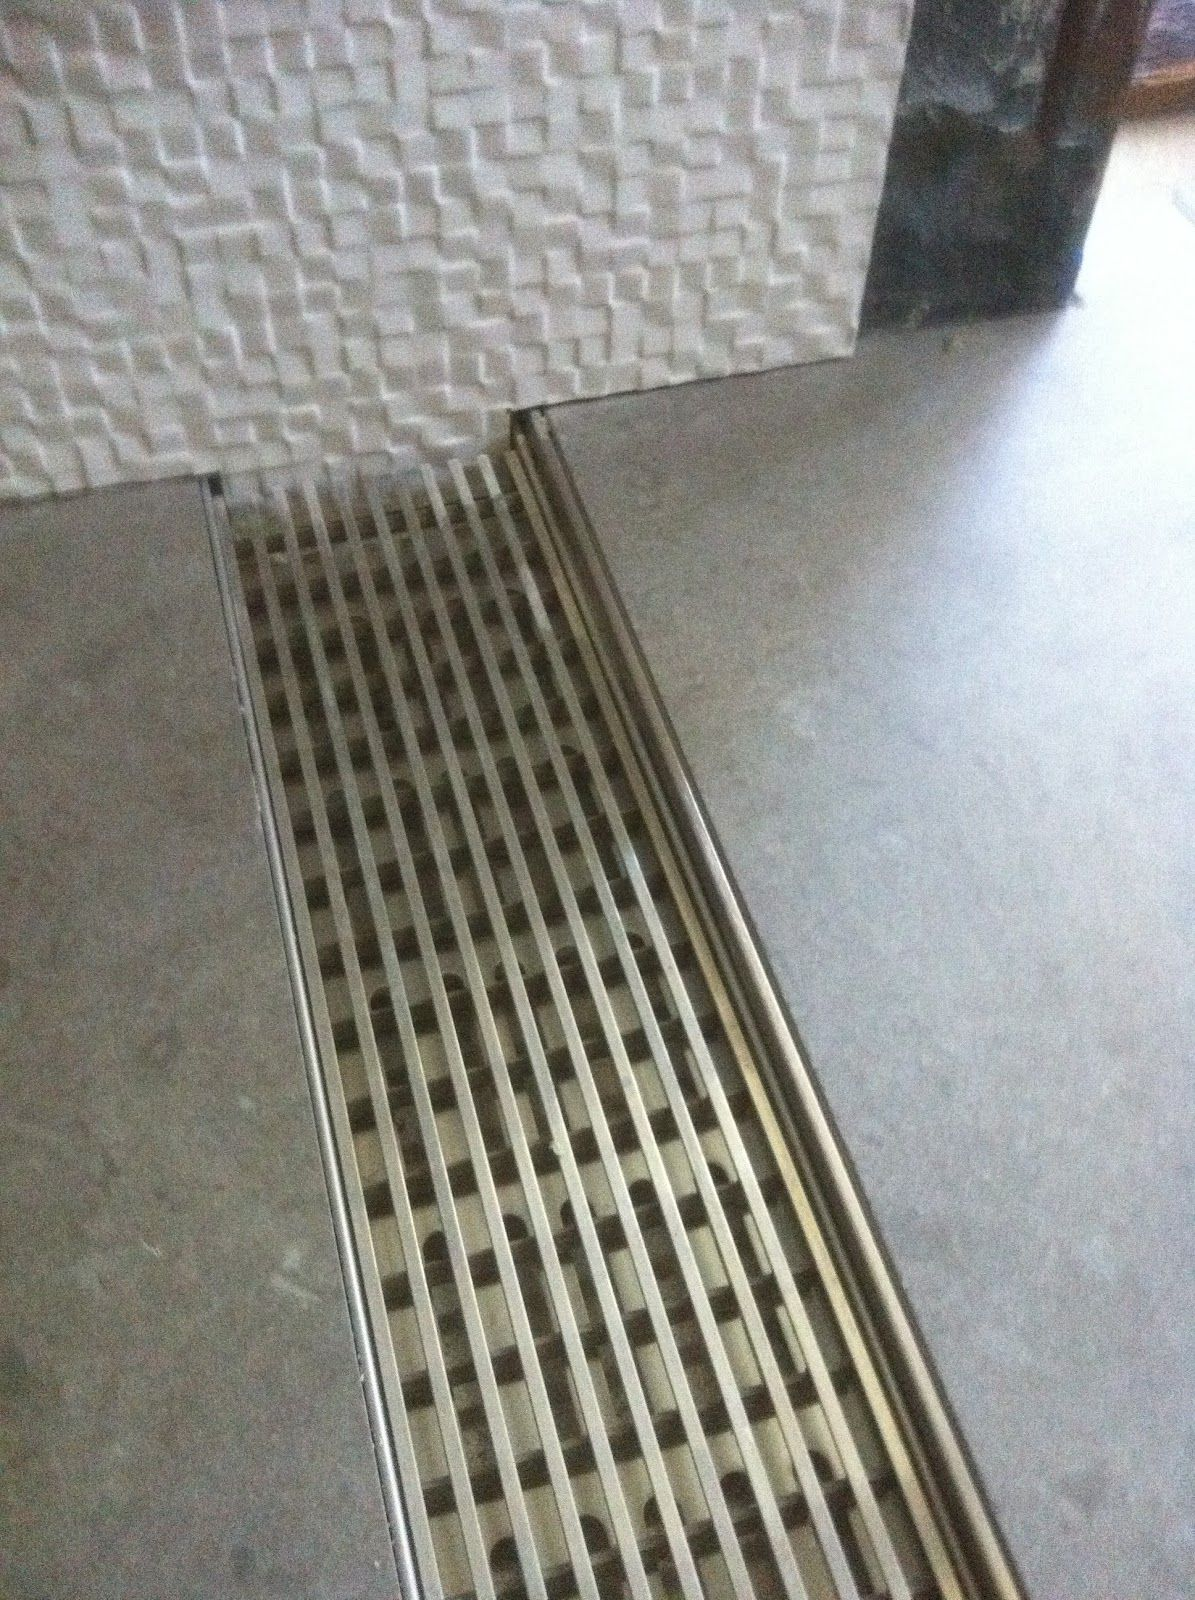 No Curb Shower Drain. Makes A Custom Tile Shower Zero Threshold For  Barrier Free